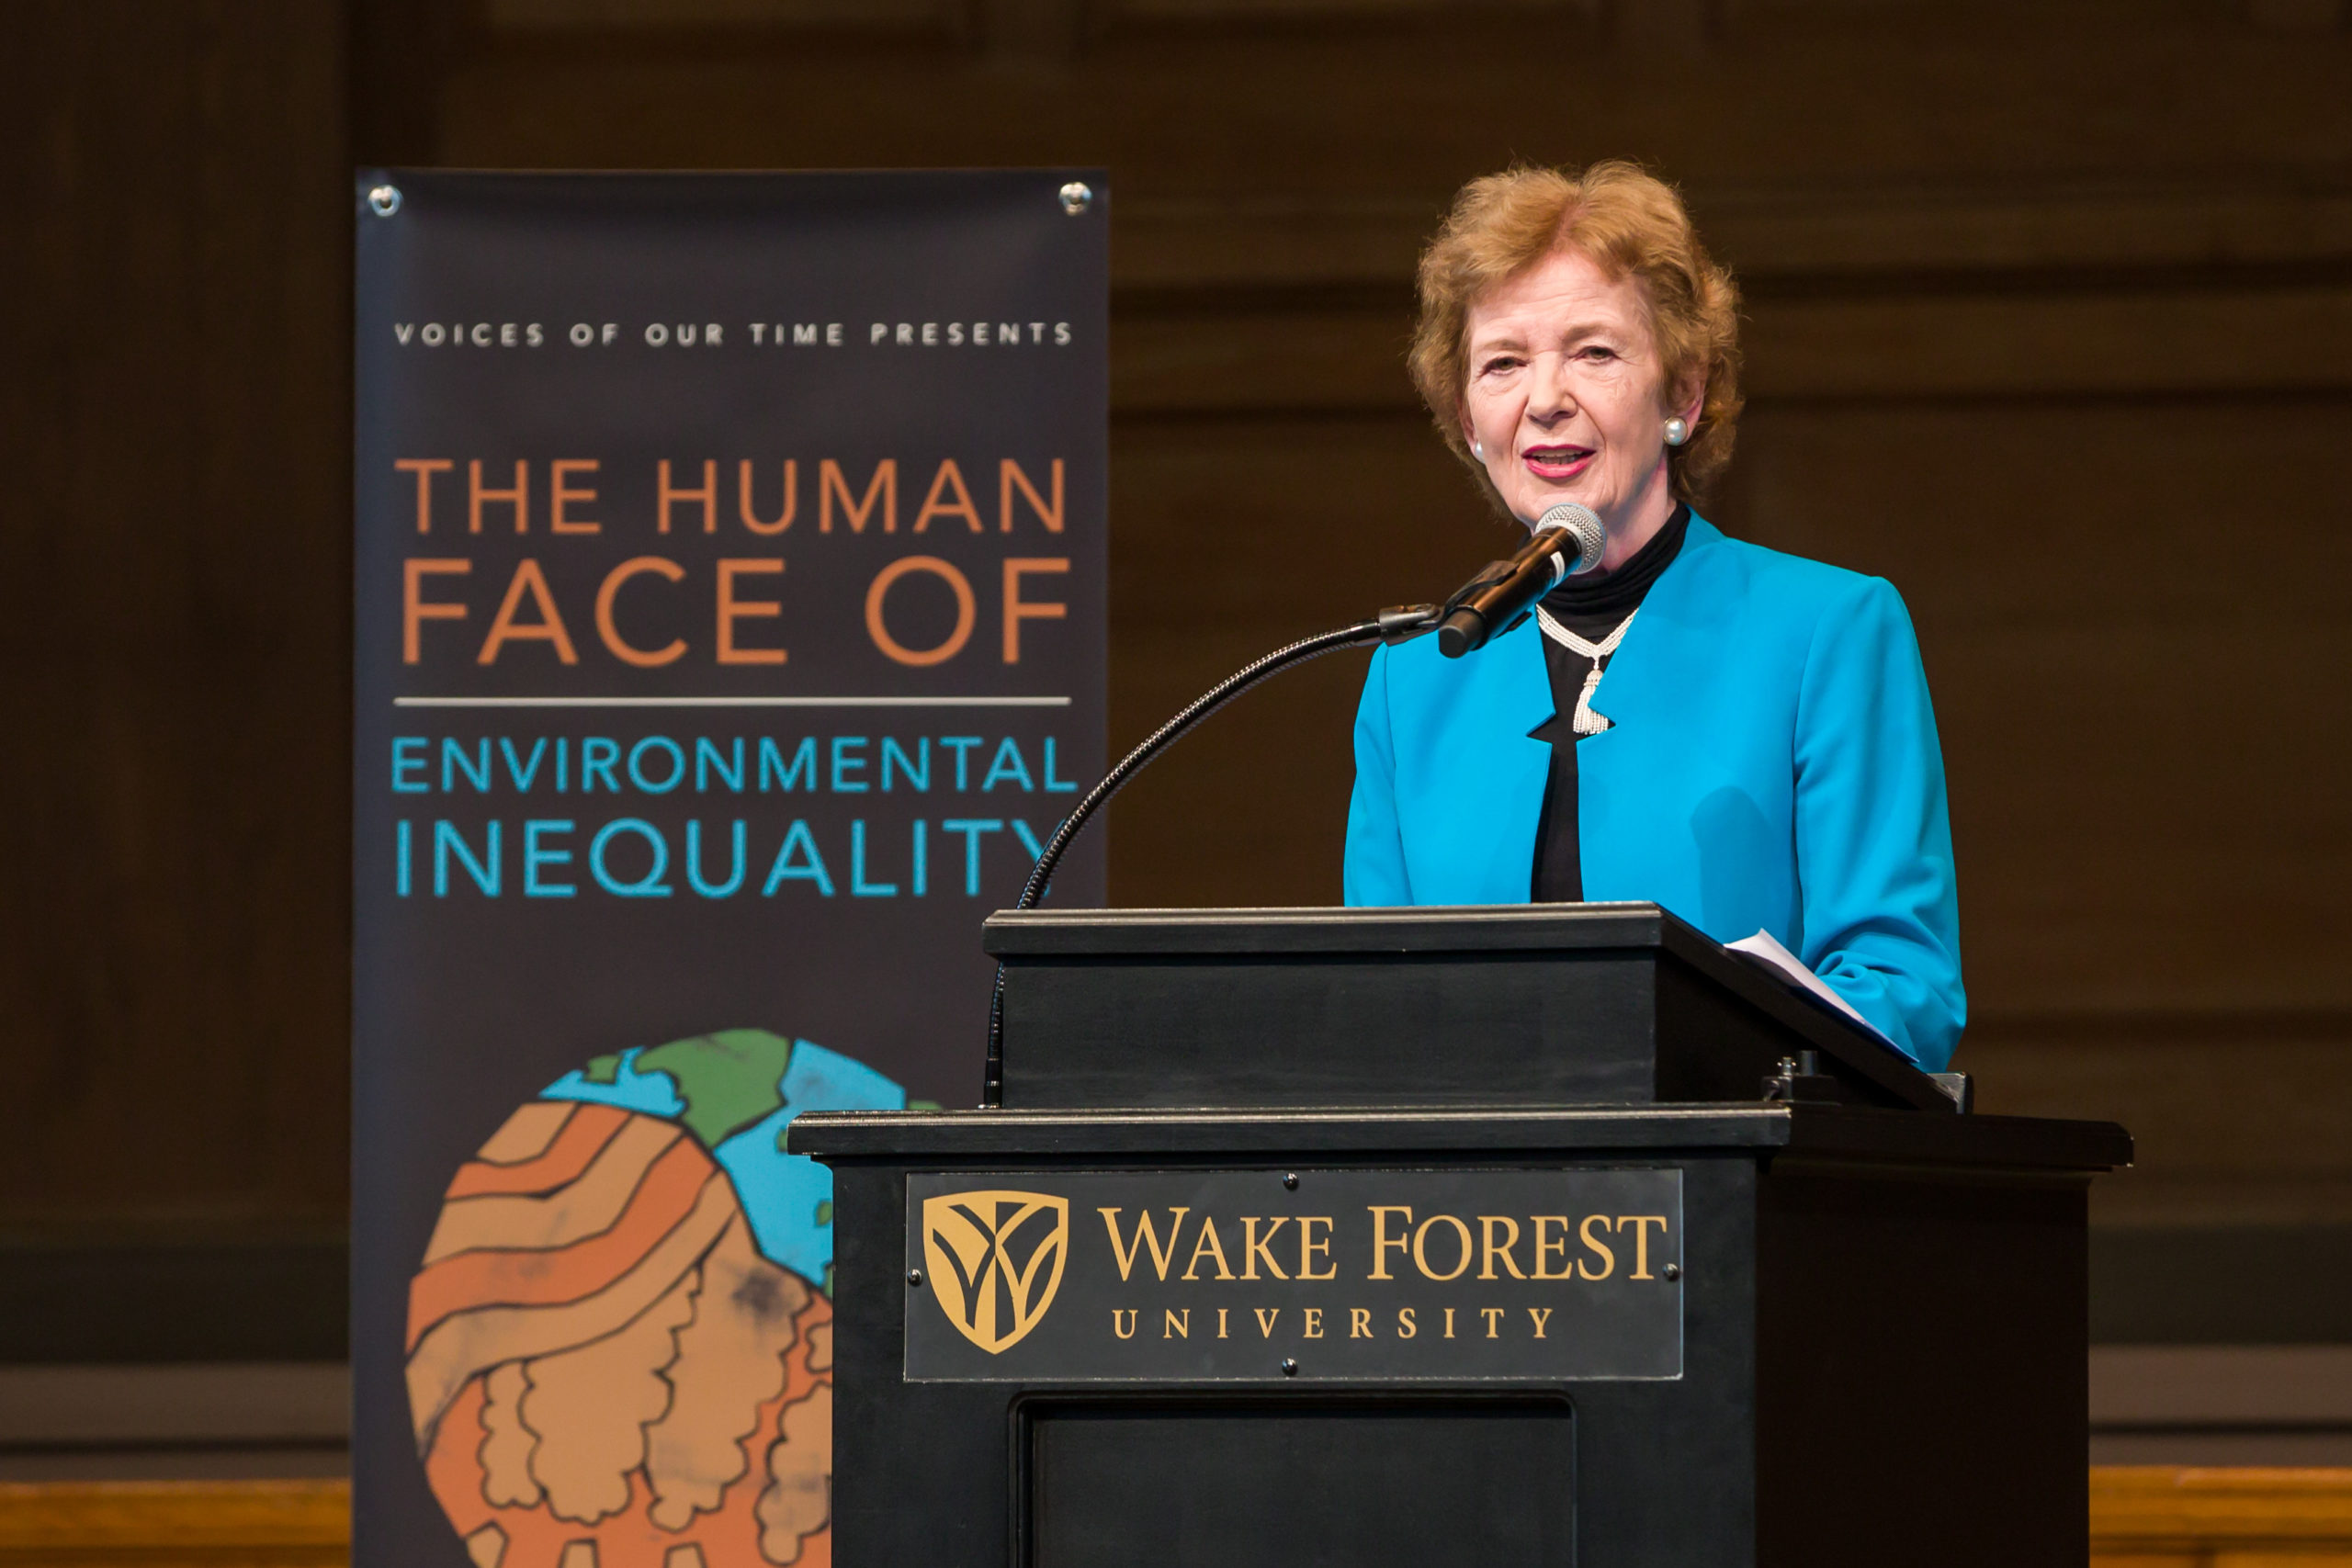 Mary Robinson, the former President of Ireland, presents her Voices of Our Time speech in Wait Chapel on Thursday, March 26, 2015. The speech is the keynote for the Human Face of Environmental Inequality conference being held on campus.